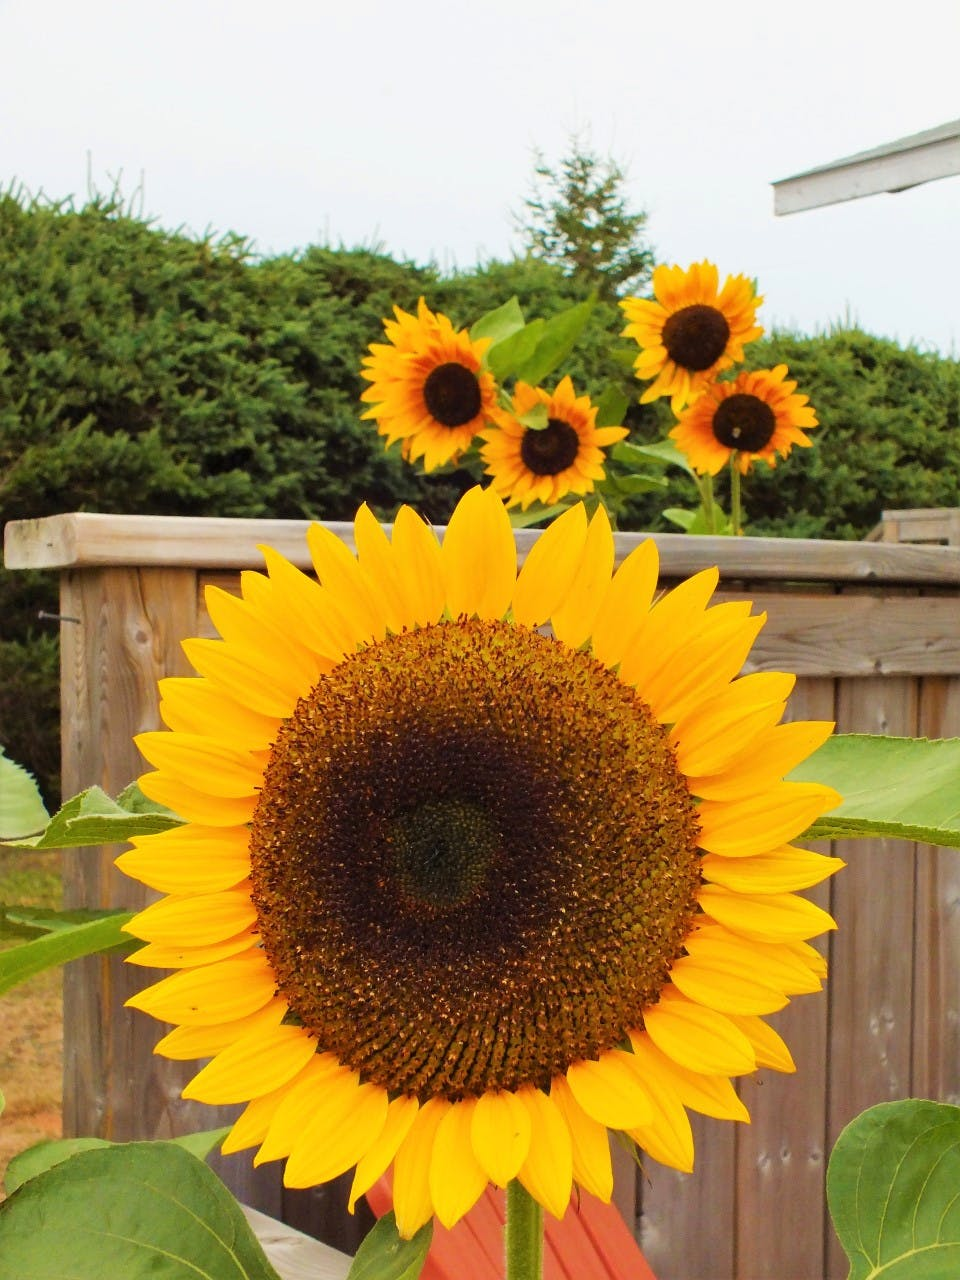 Susan McLean loves sunflowers so much that she grows them. How many sunflowers do you see in this photo taken in her yard in Darnley, P.E.I.?There are more flowers there than meet the eye. The iconic yellow petals and fuzzy brown centres are individual flowers themselves; as many as 2,000 can make up the classic sunflower bloom.